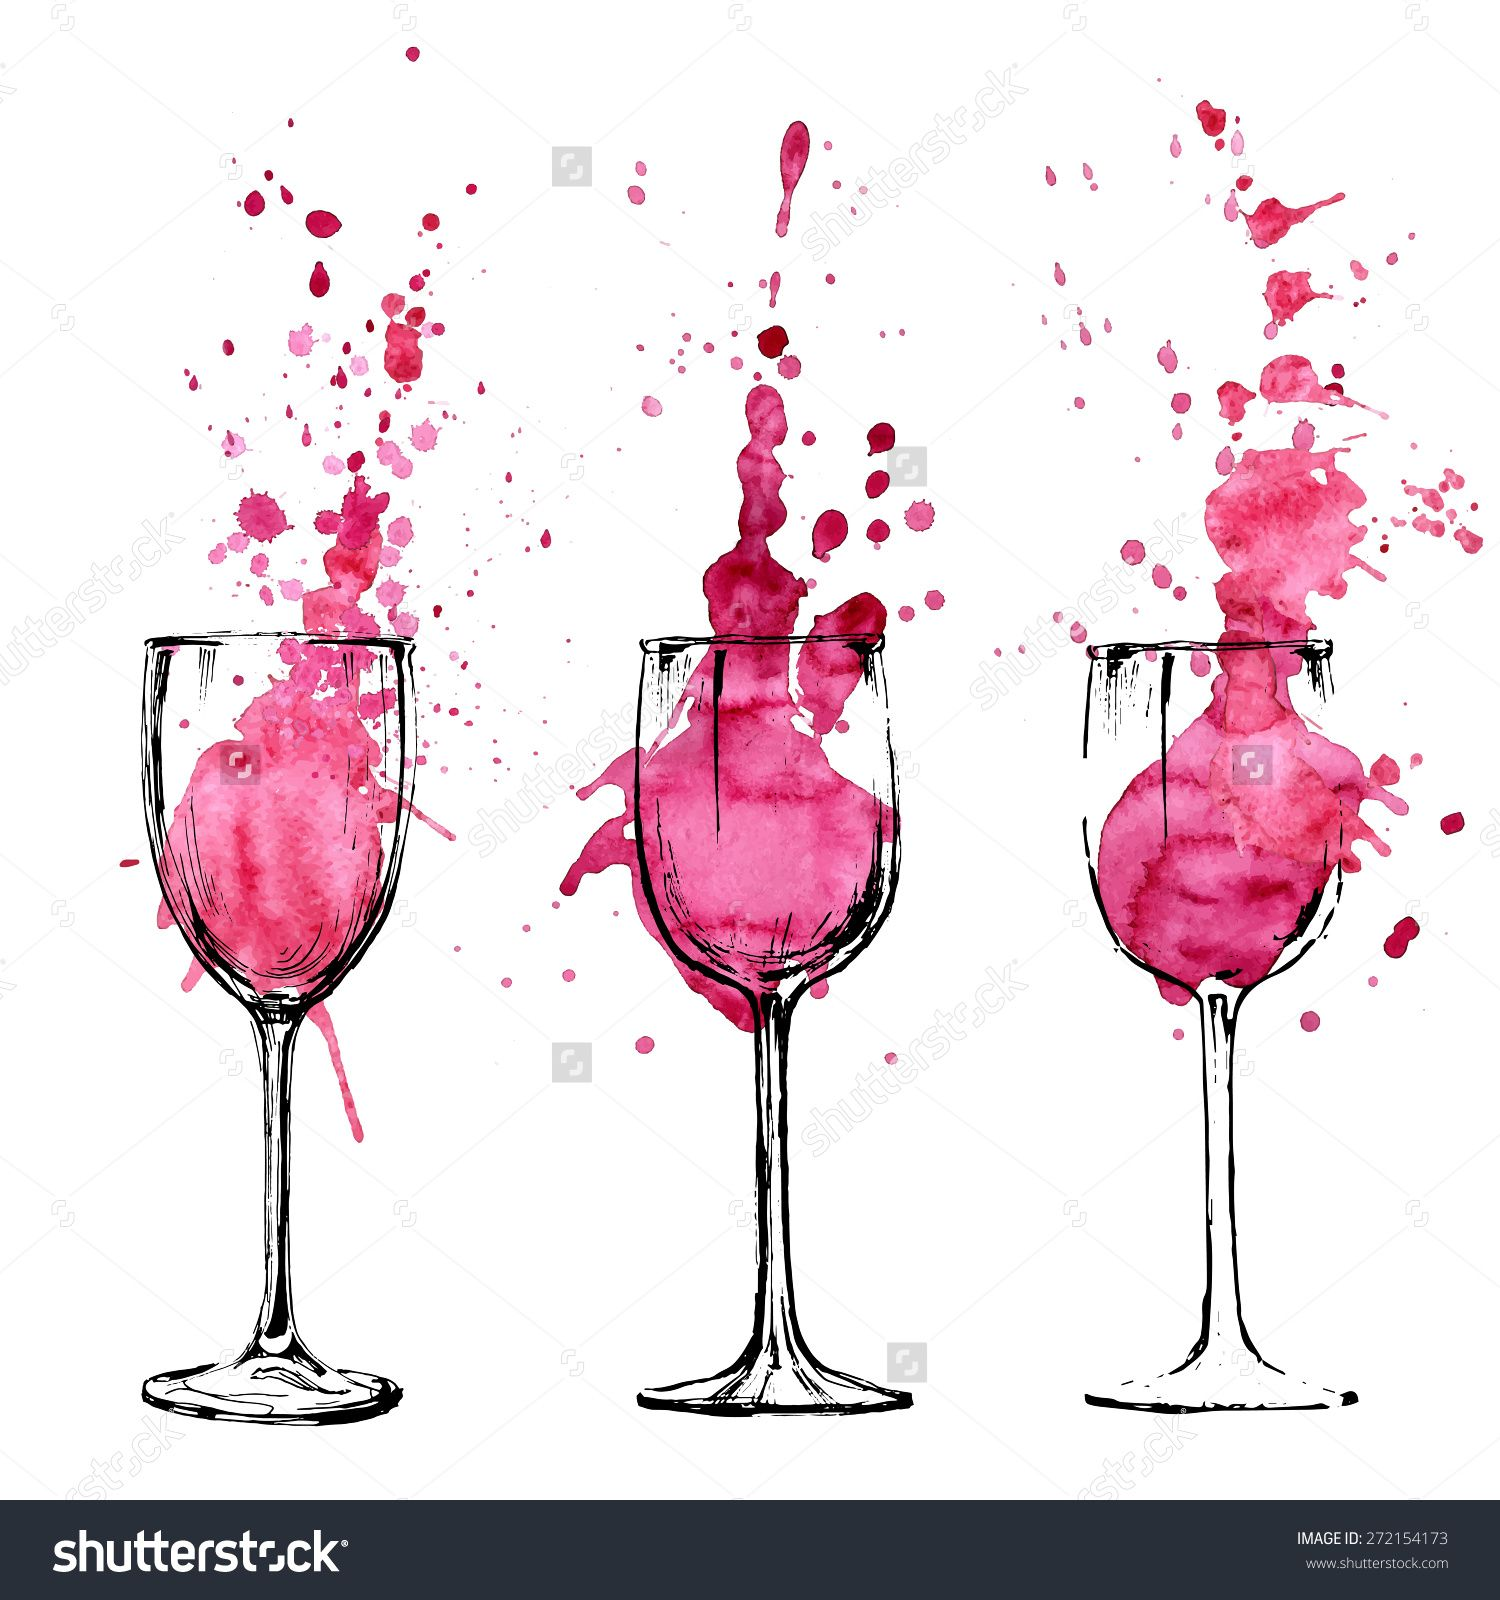 Wine illustration sketch and art style draws pinterest art